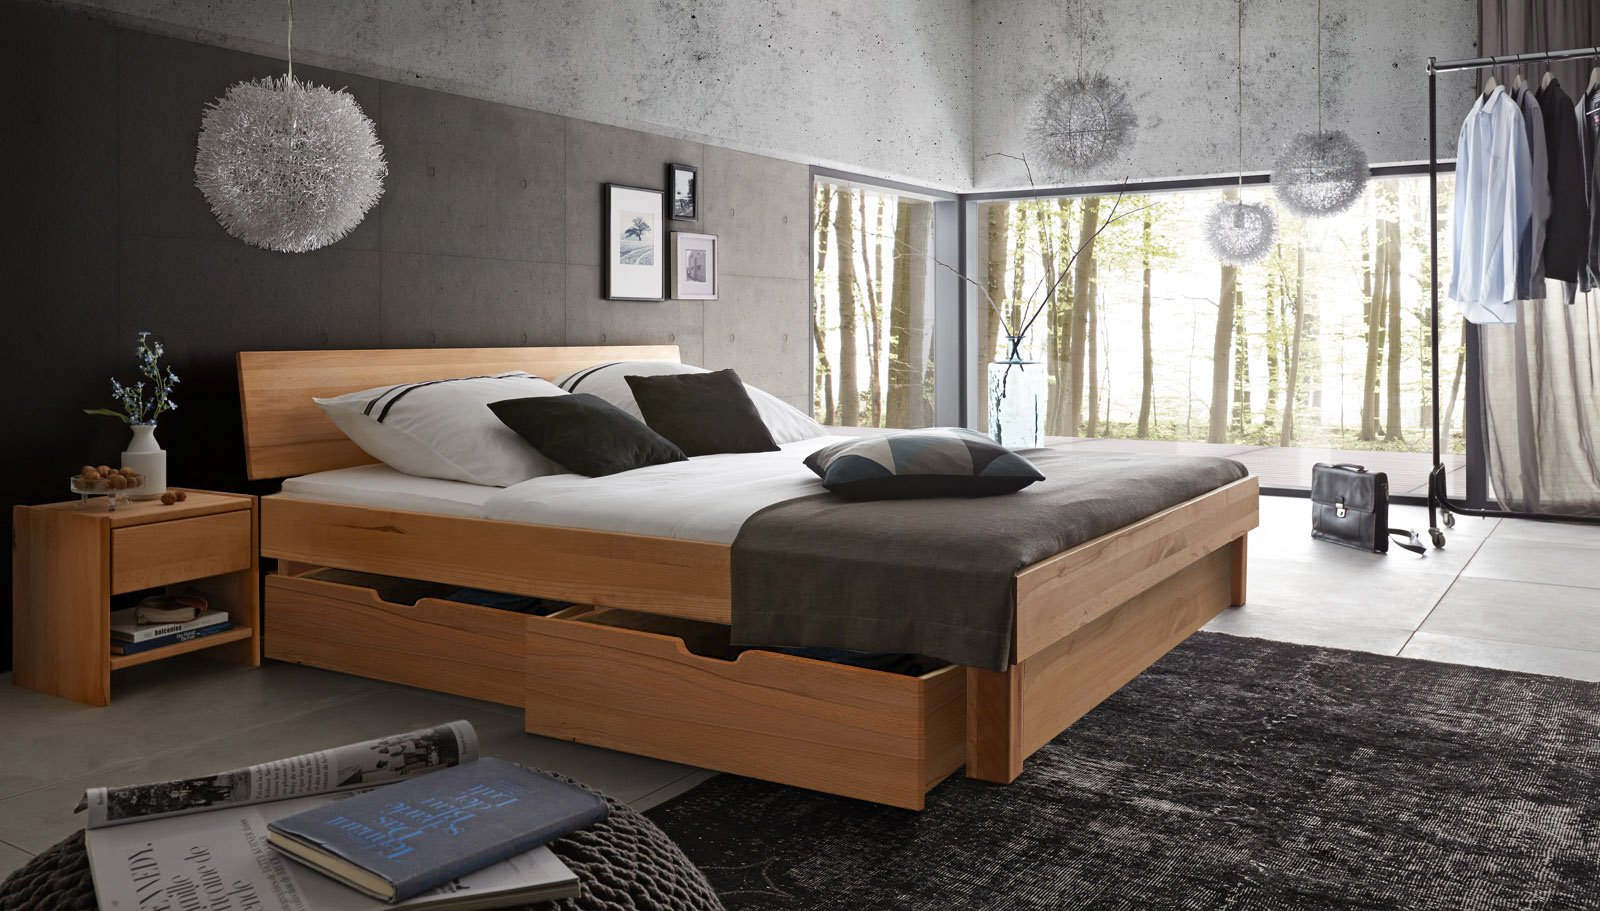 sam massivholzbett 200x200 kernbuche bettkasten holzbett. Black Bedroom Furniture Sets. Home Design Ideas